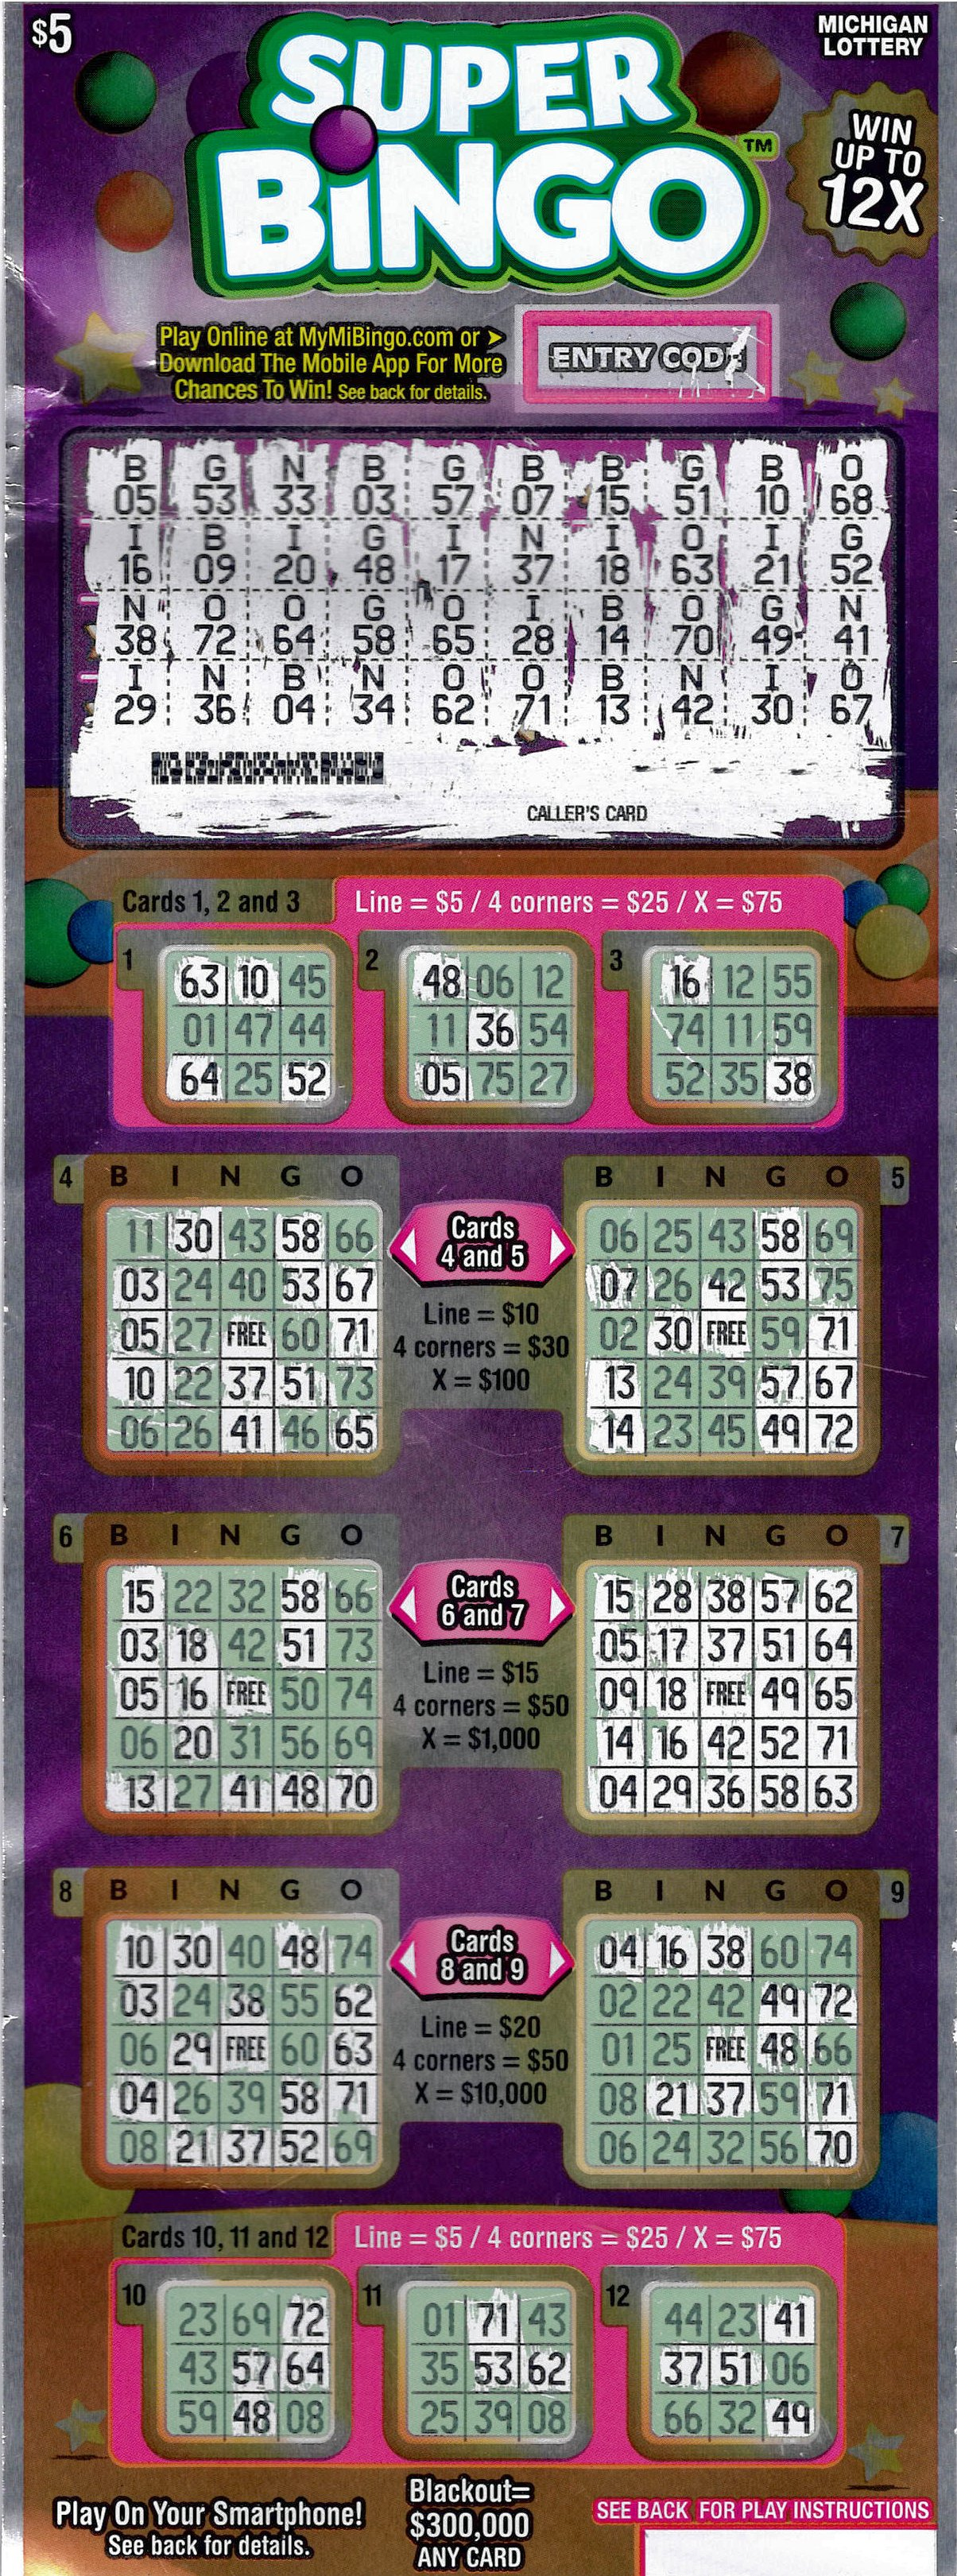 Bingo lottery numbers